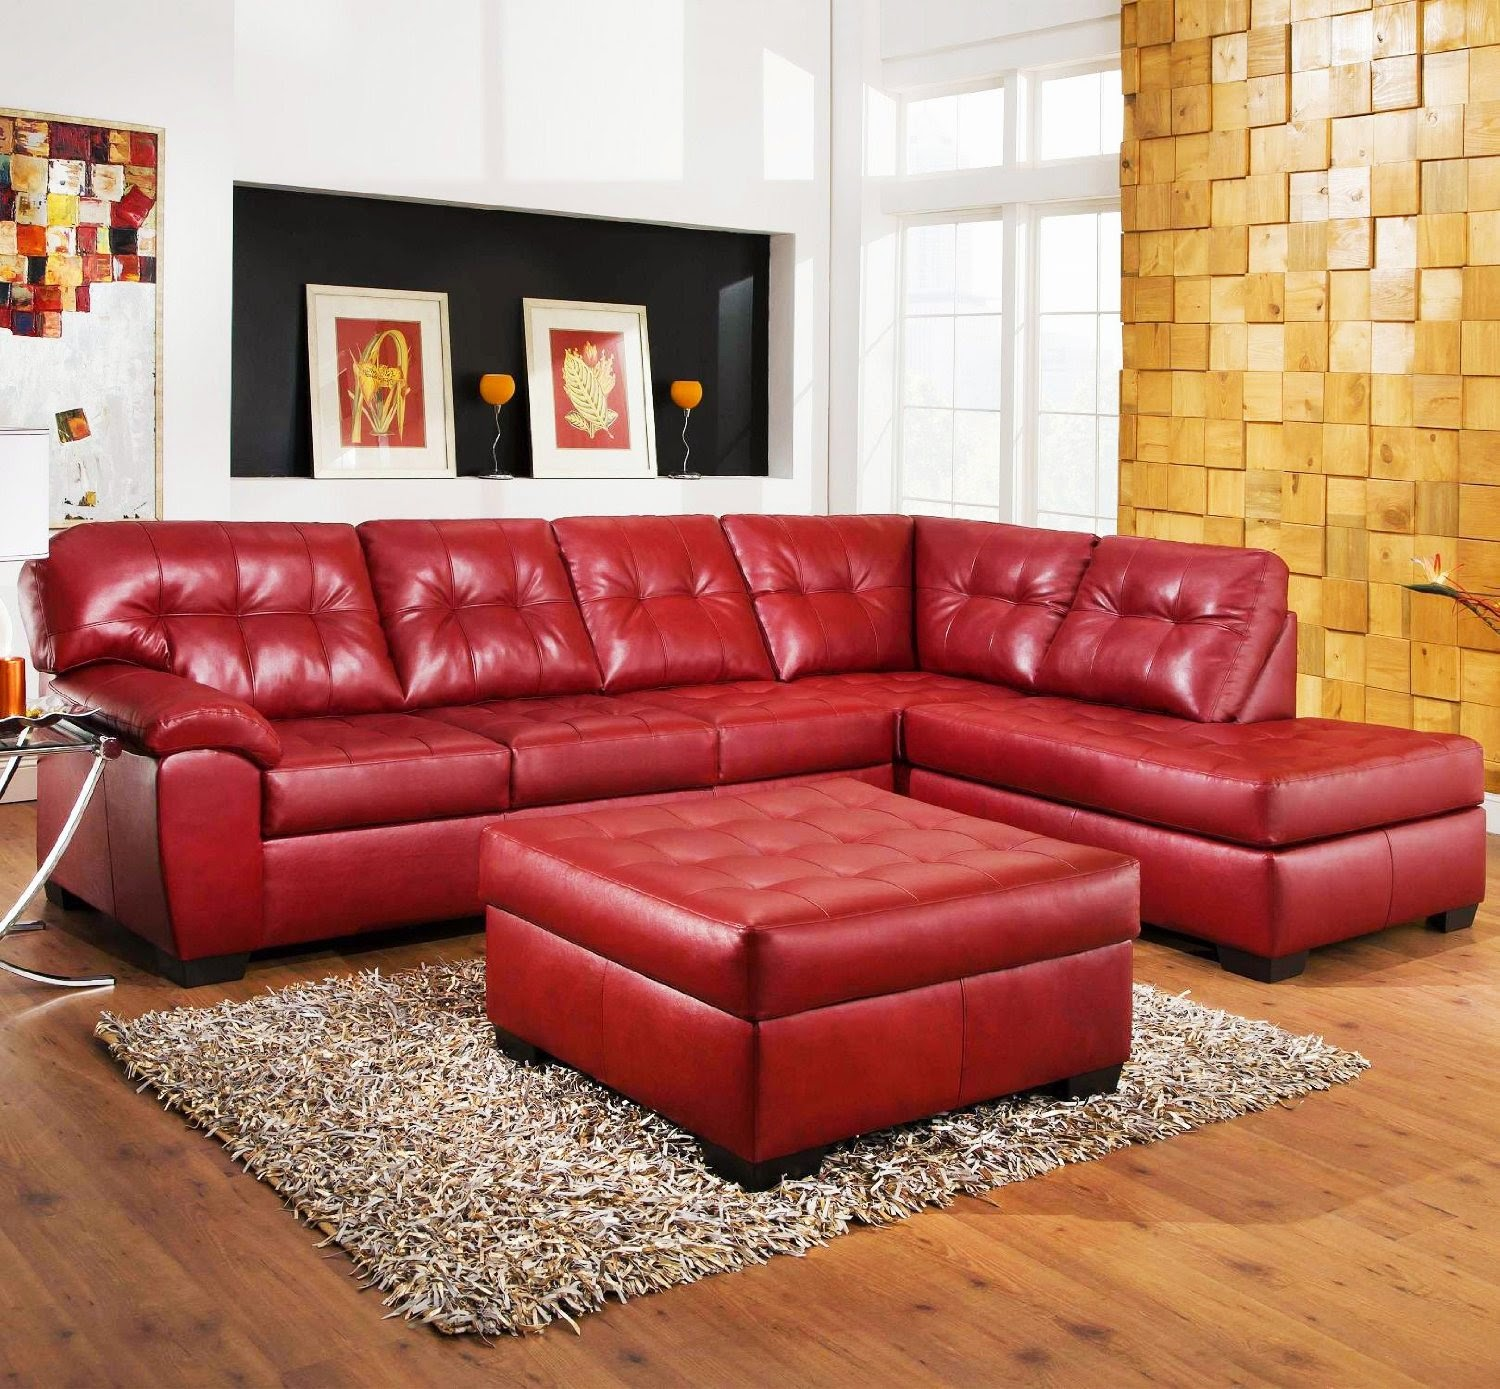 red couch red leather couch